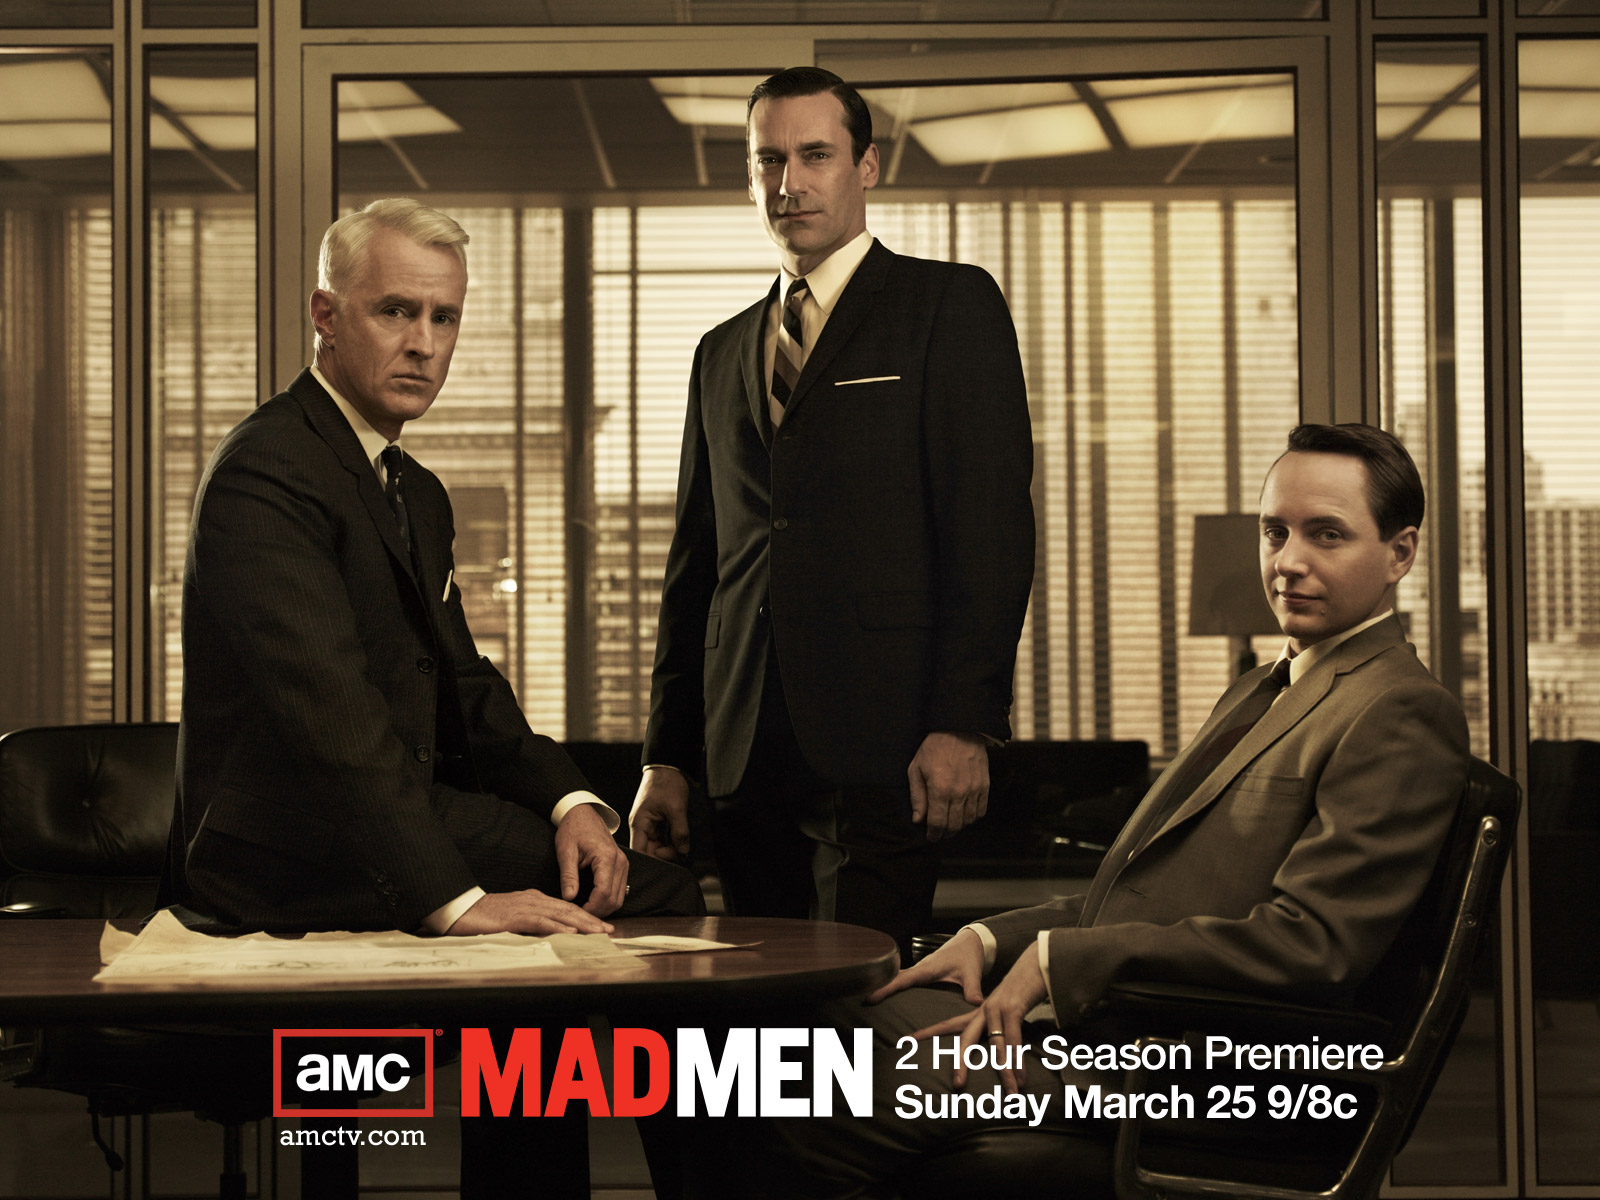 50+] Mad Men Wallpaper Widescreen on WallpaperSafari